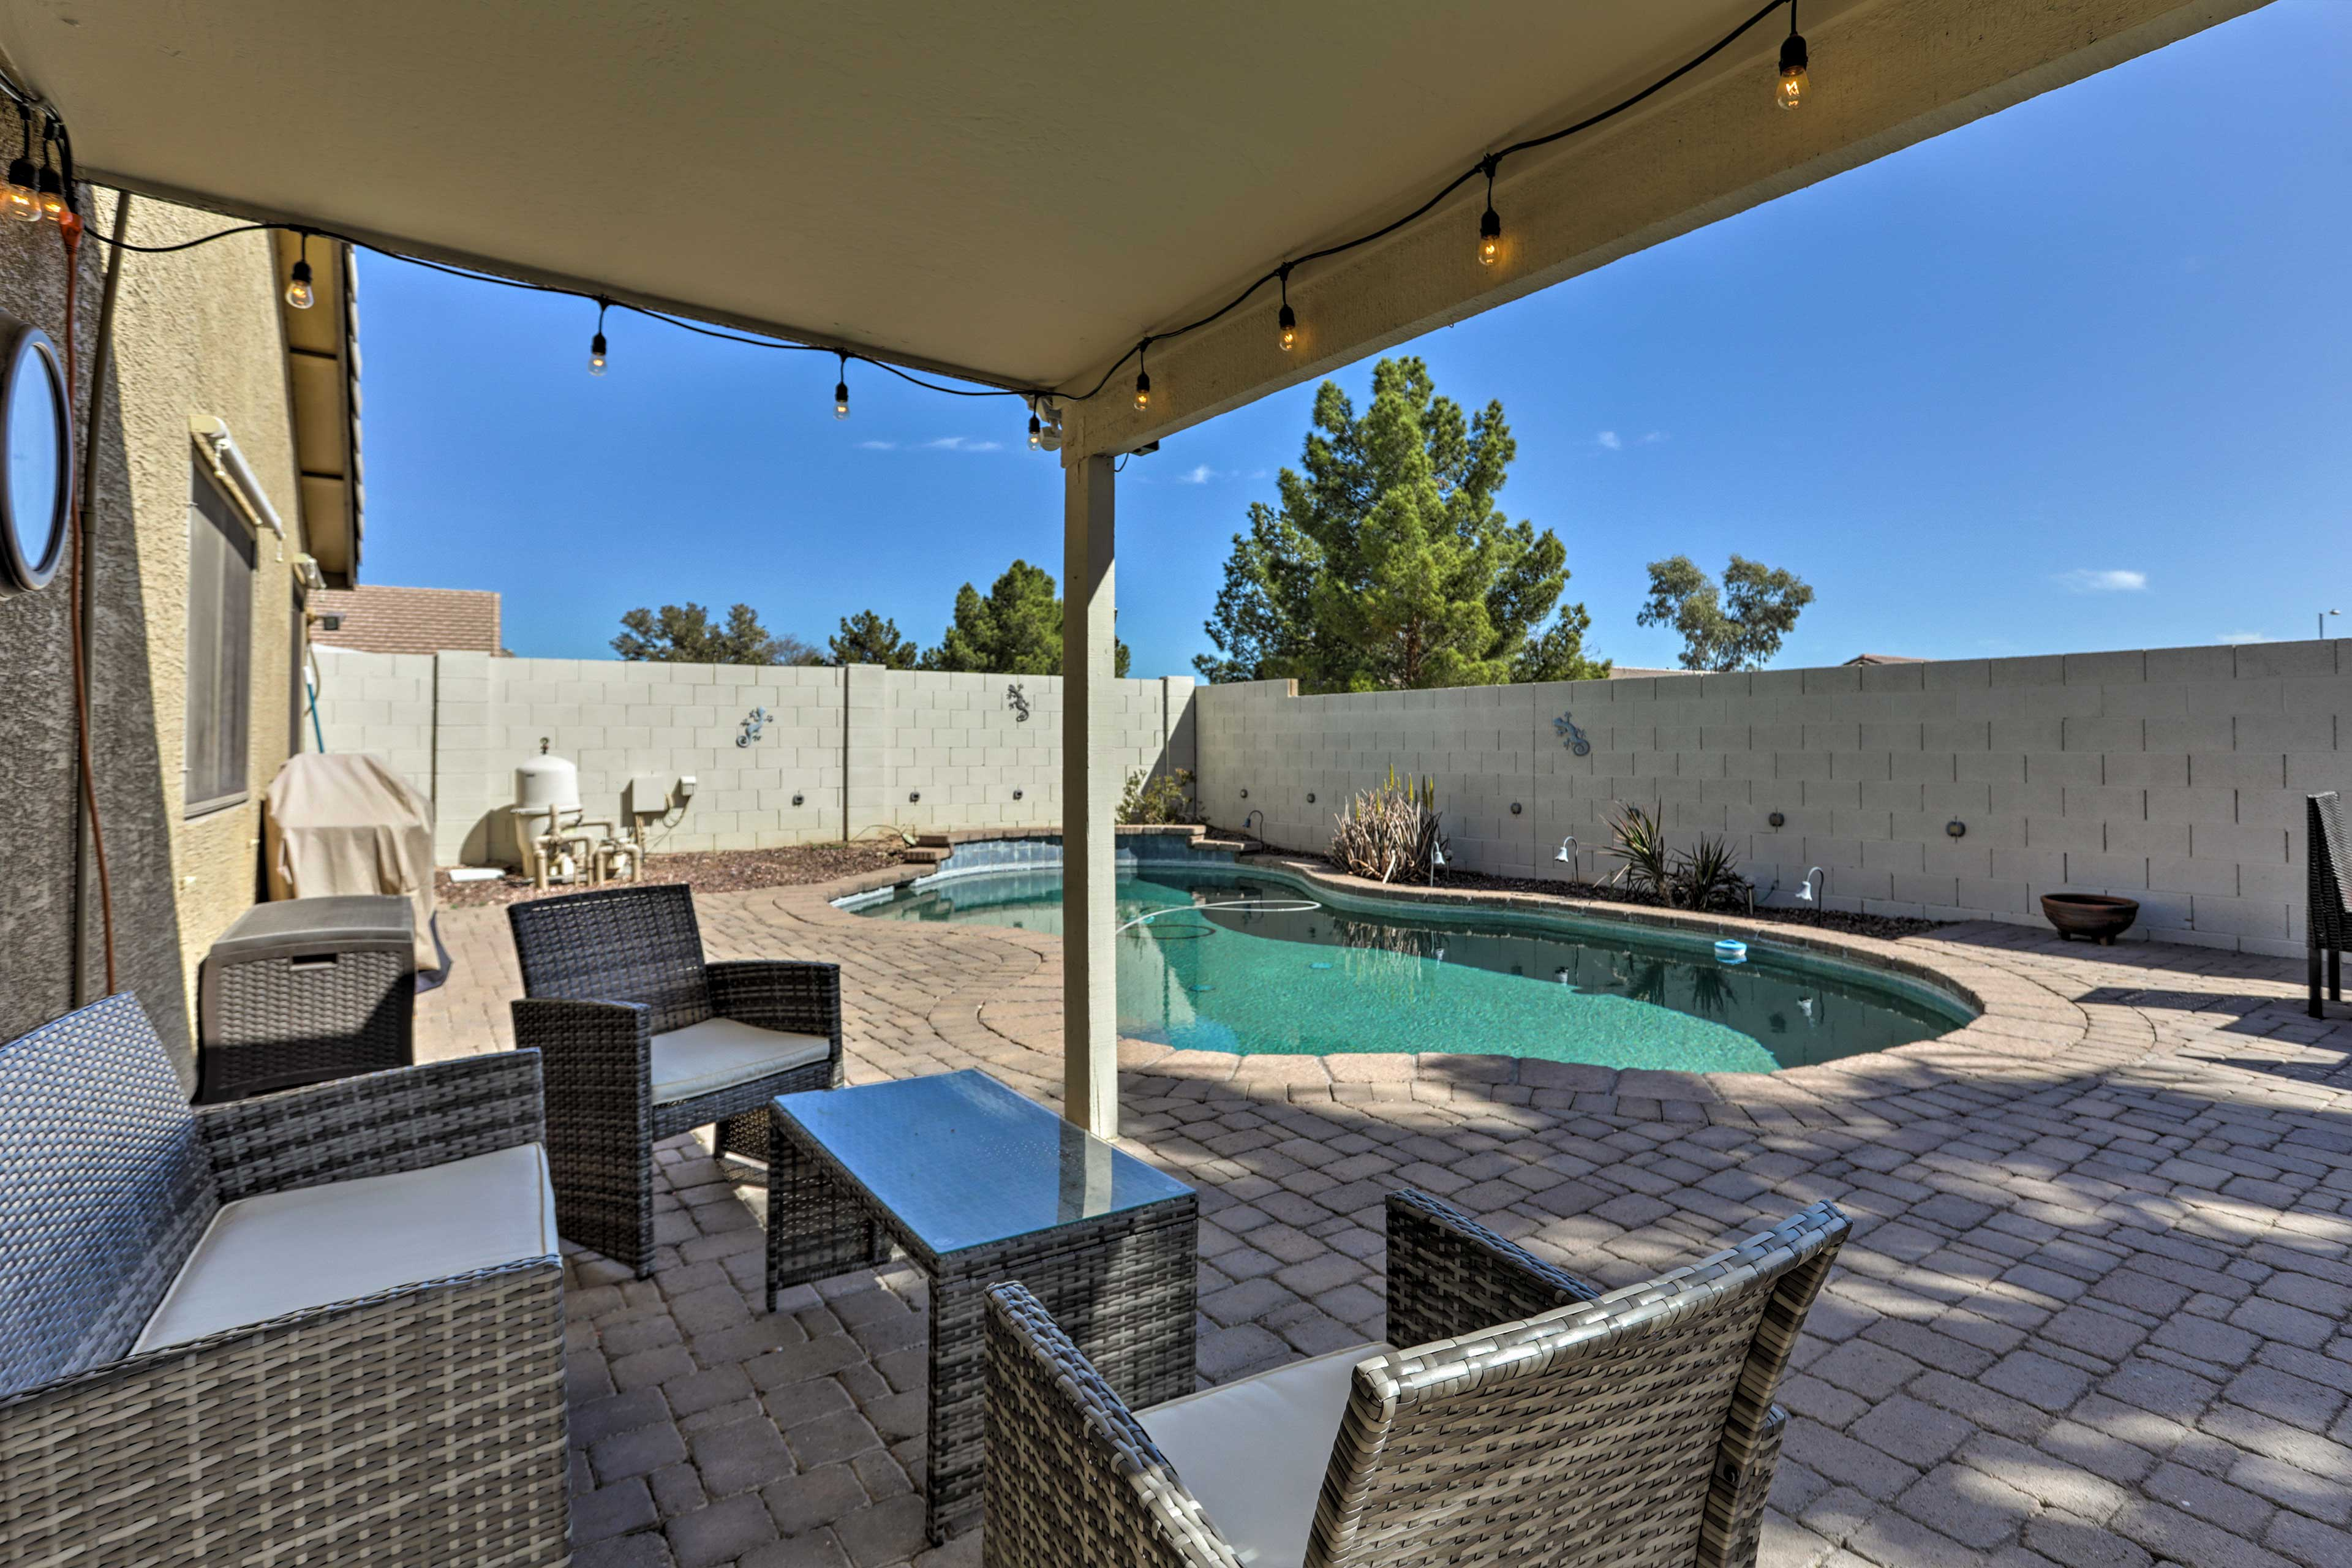 Escape to sunny Arizona by staying in this 3-bed vacation rental in Surprise!